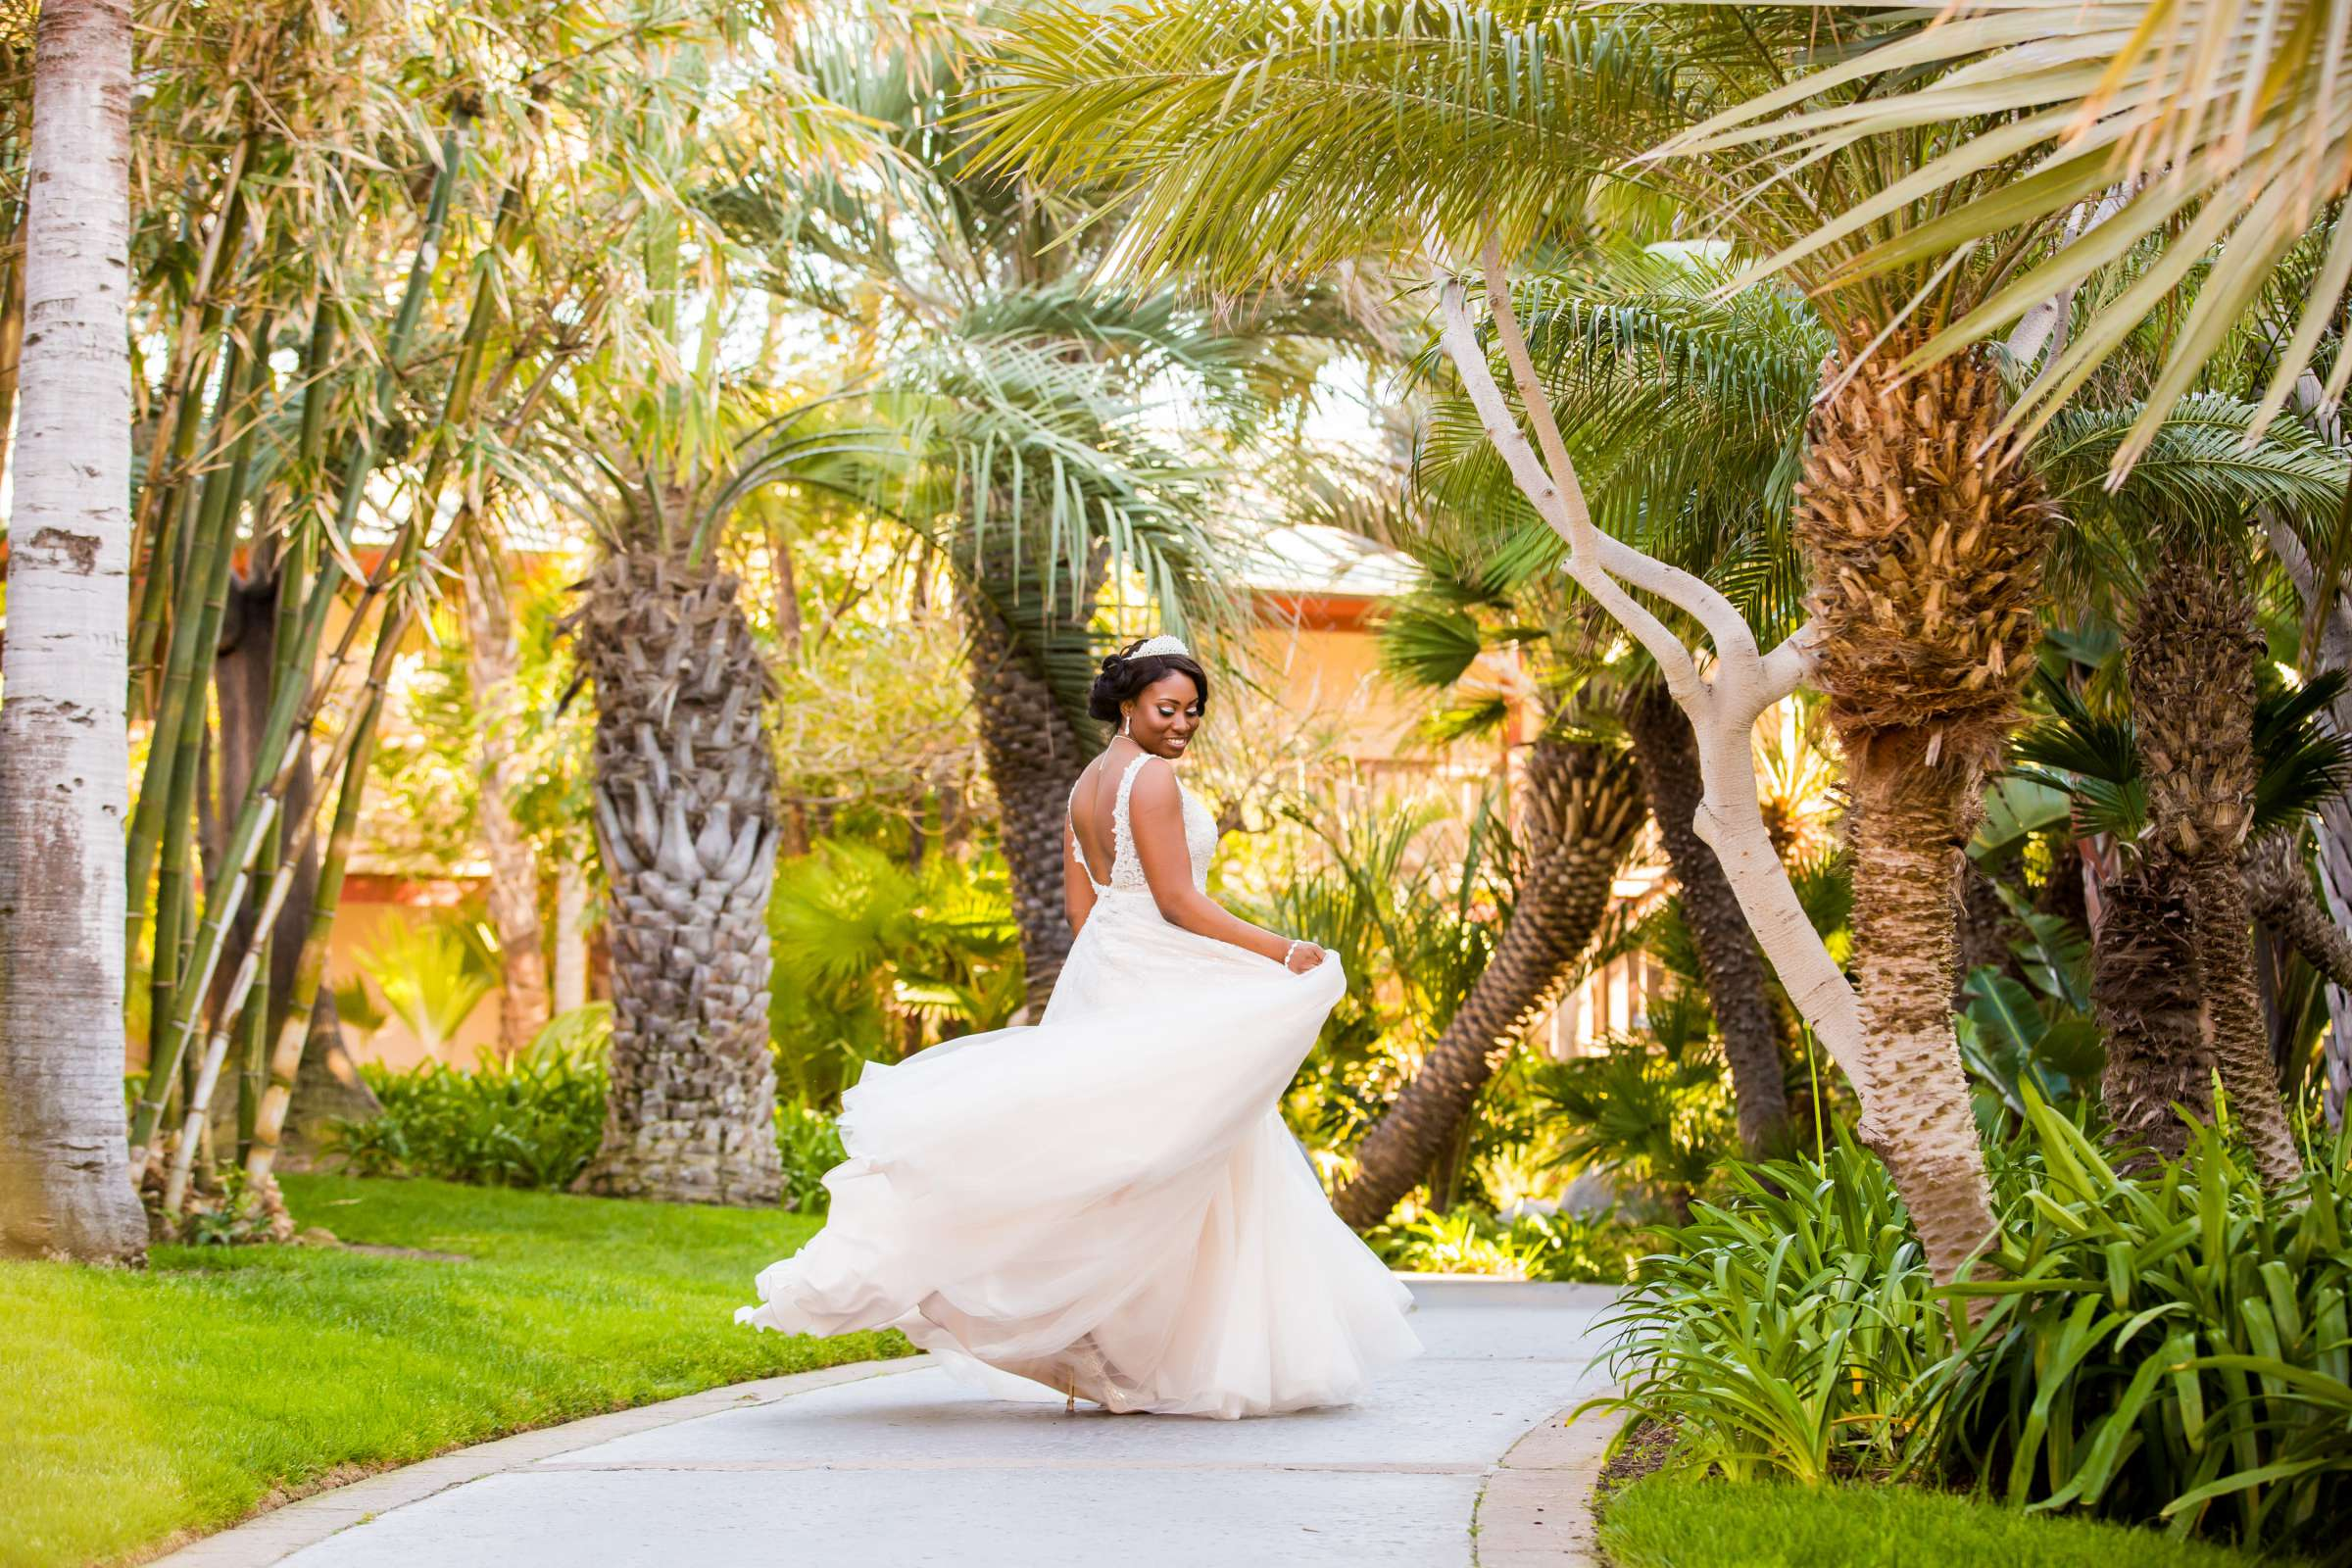 Catamaran Resort Wedding coordinated by Events Inspired SD, Vanessa and Akorli Wedding Photo #5 by True Photography